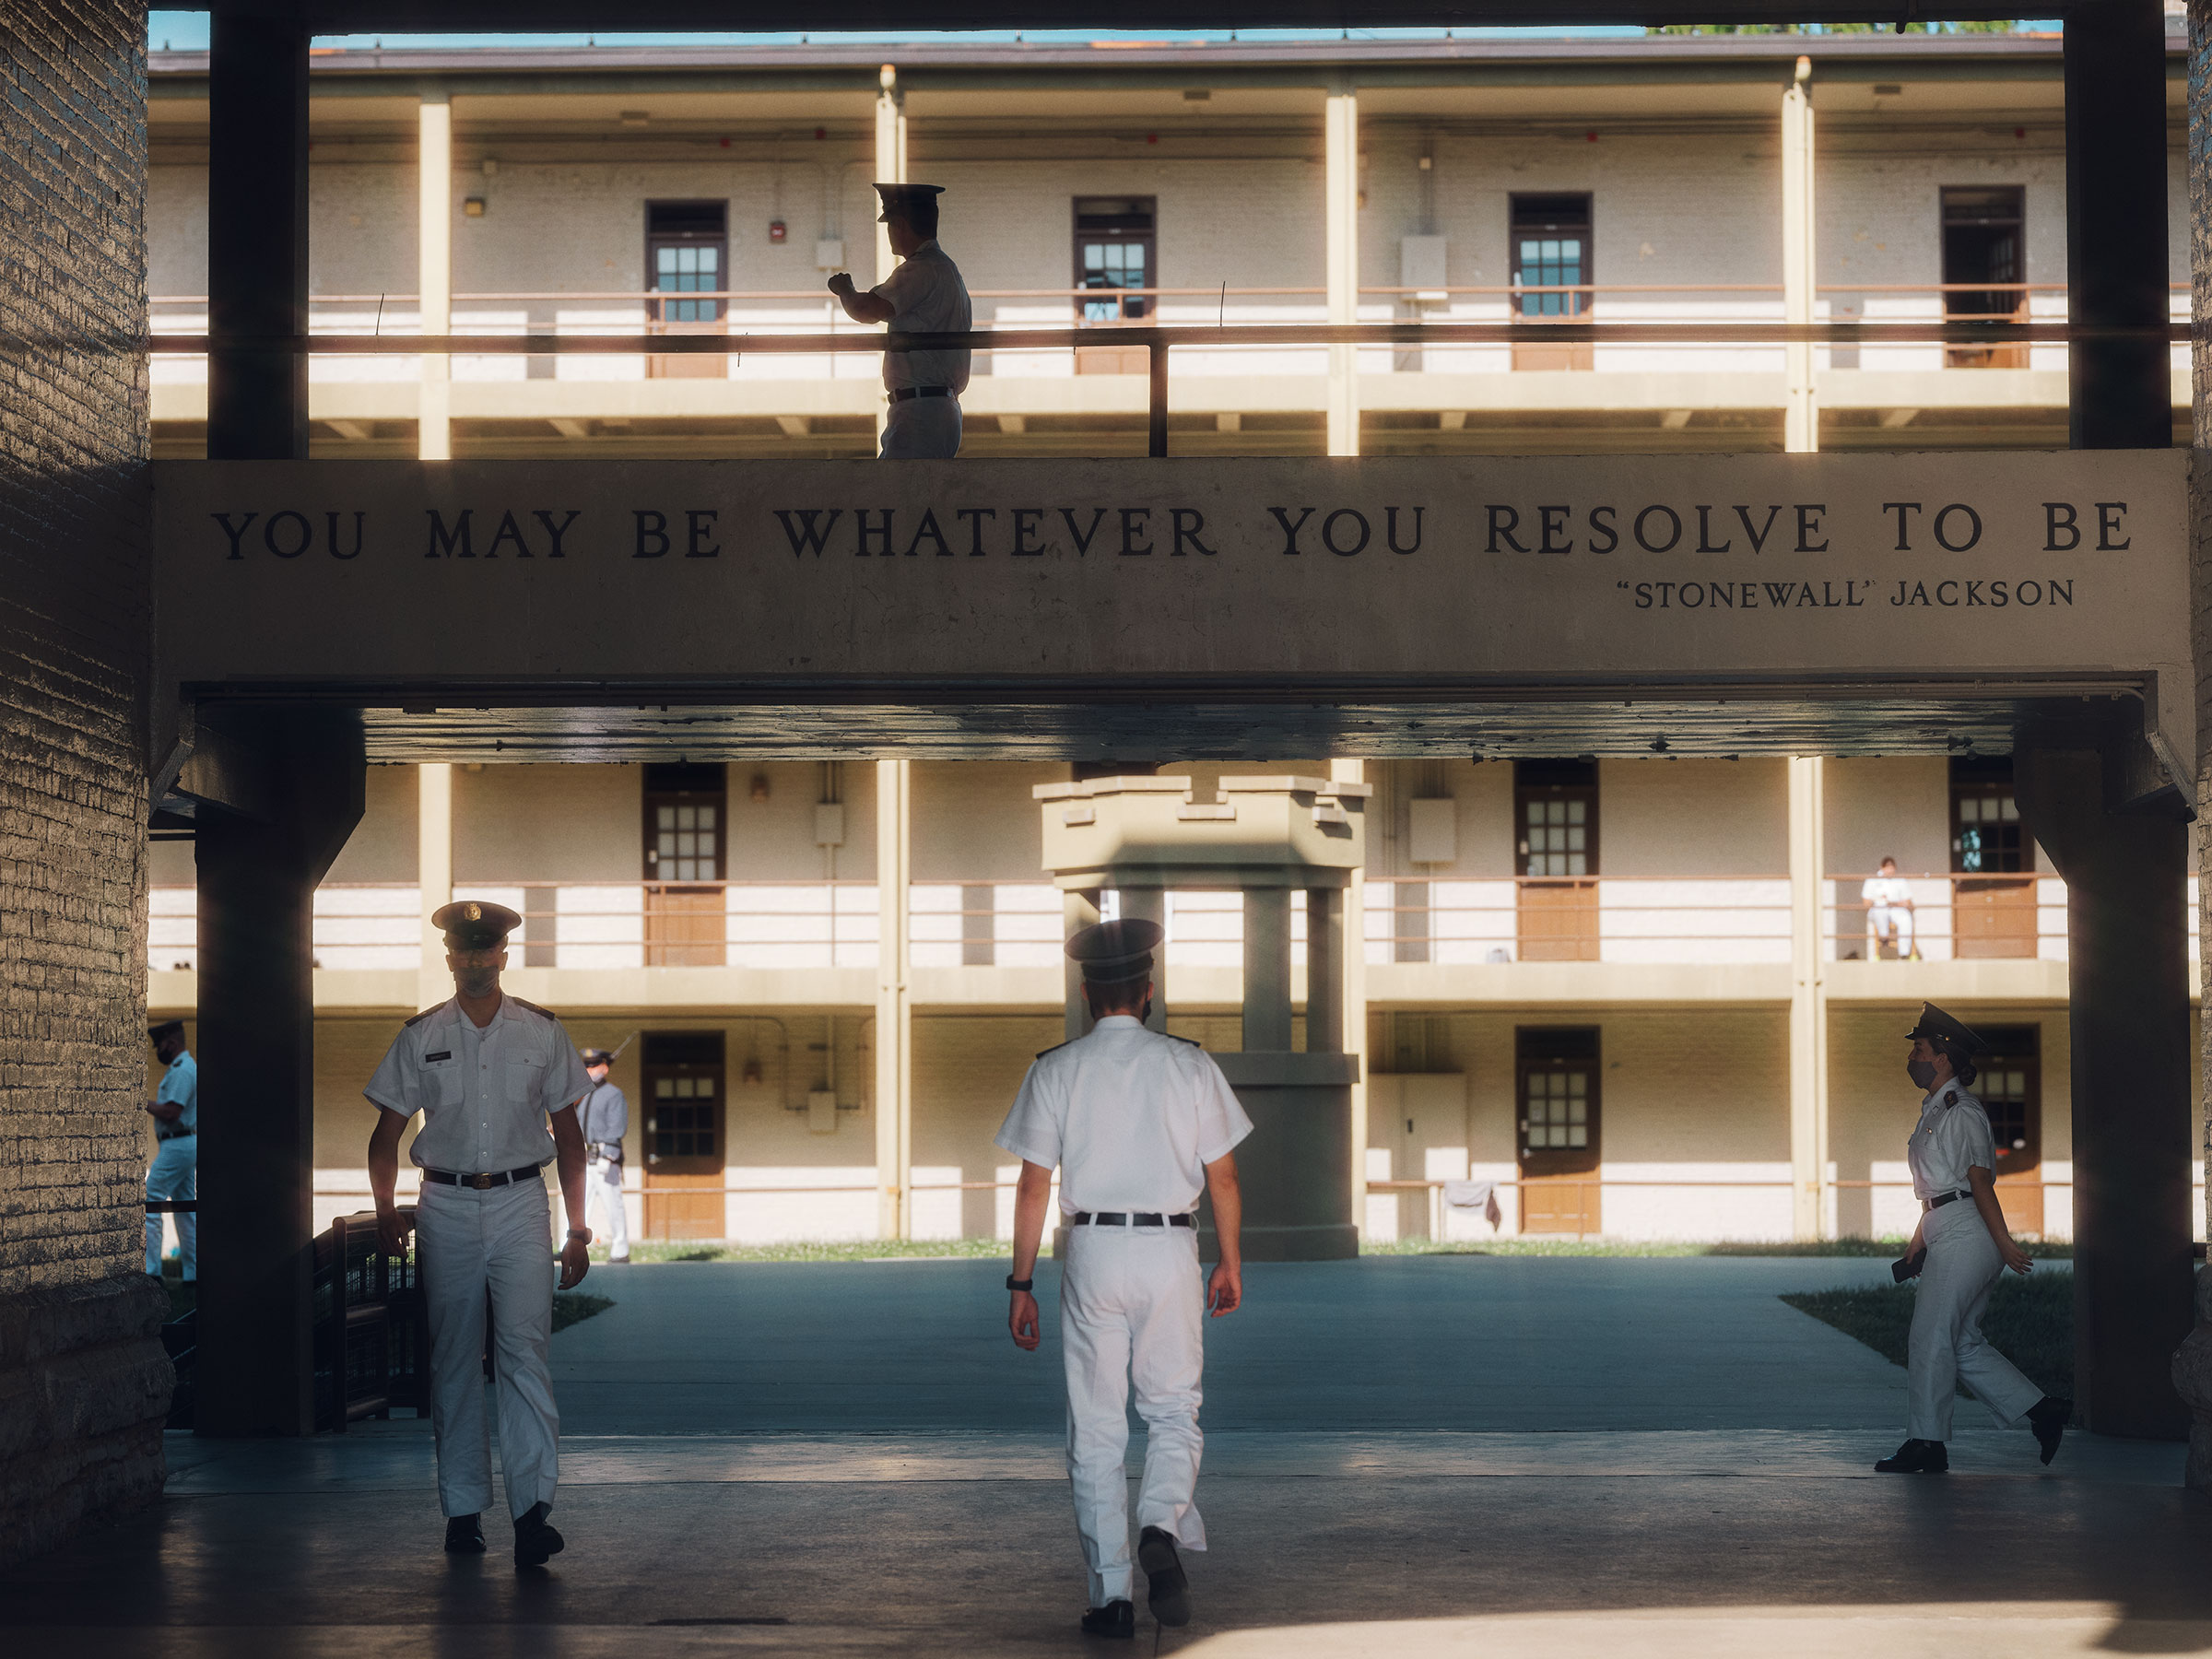 VMI's board voted in May to strip Jackson's name from the mantra adorning the barracks.